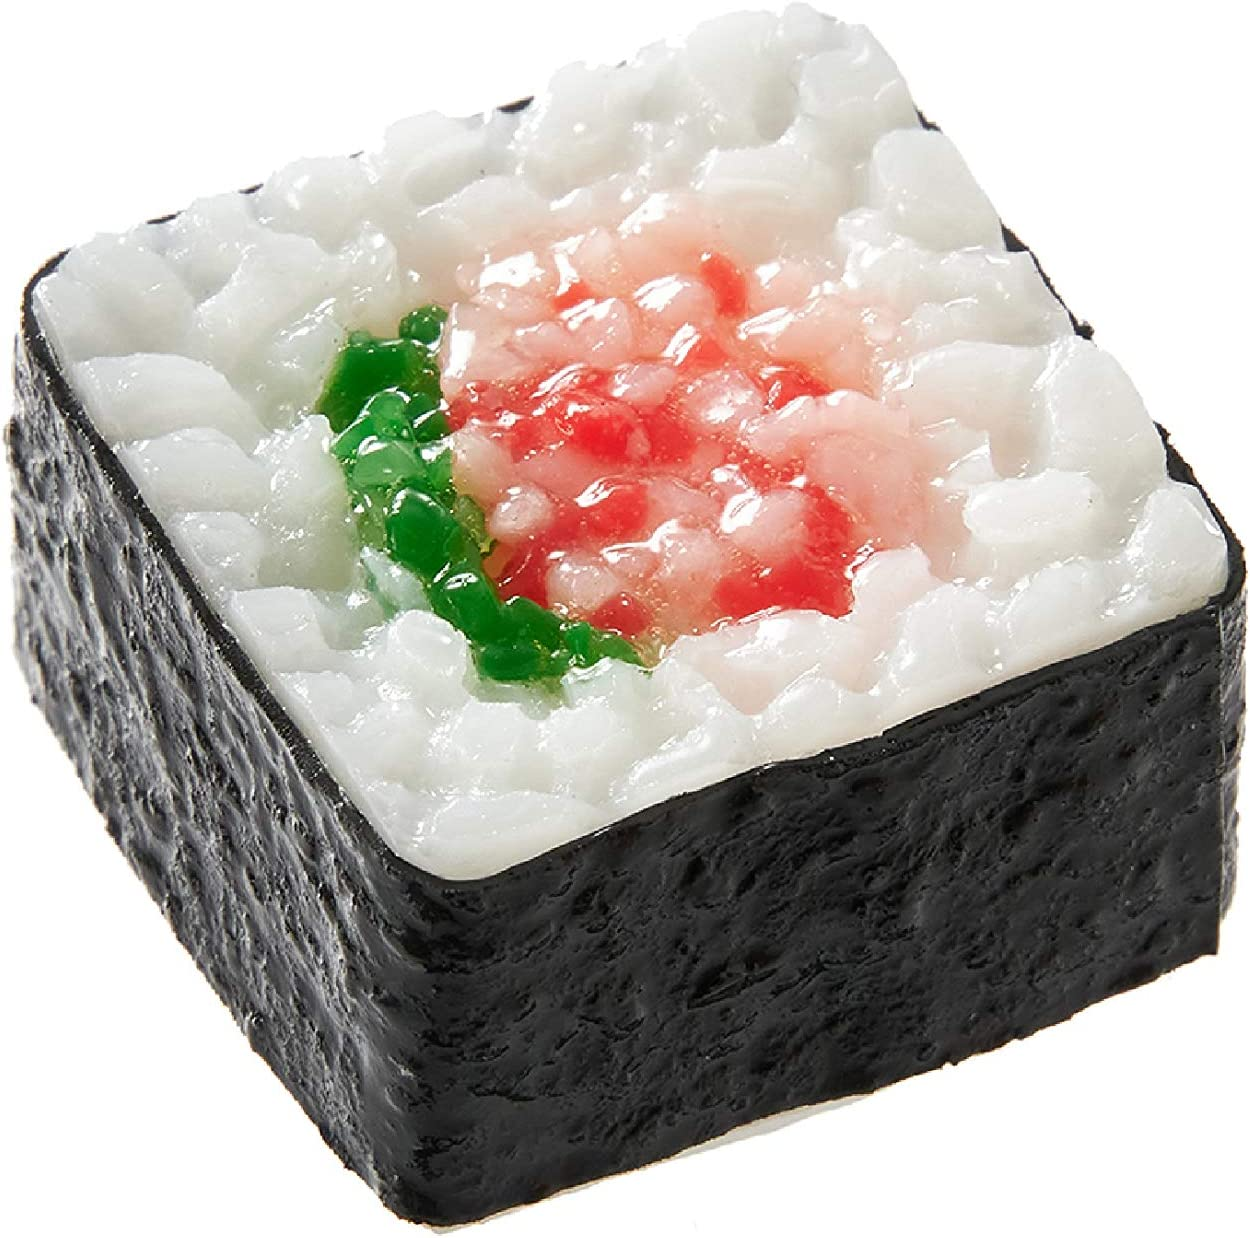 Sushi Magnet (1 pack: Negitoro Roll) Realistic, food replicas made by the experts/A great gift for people who like sushi and novelty/For refrigerators, whiteboards/ 20 kinds in total